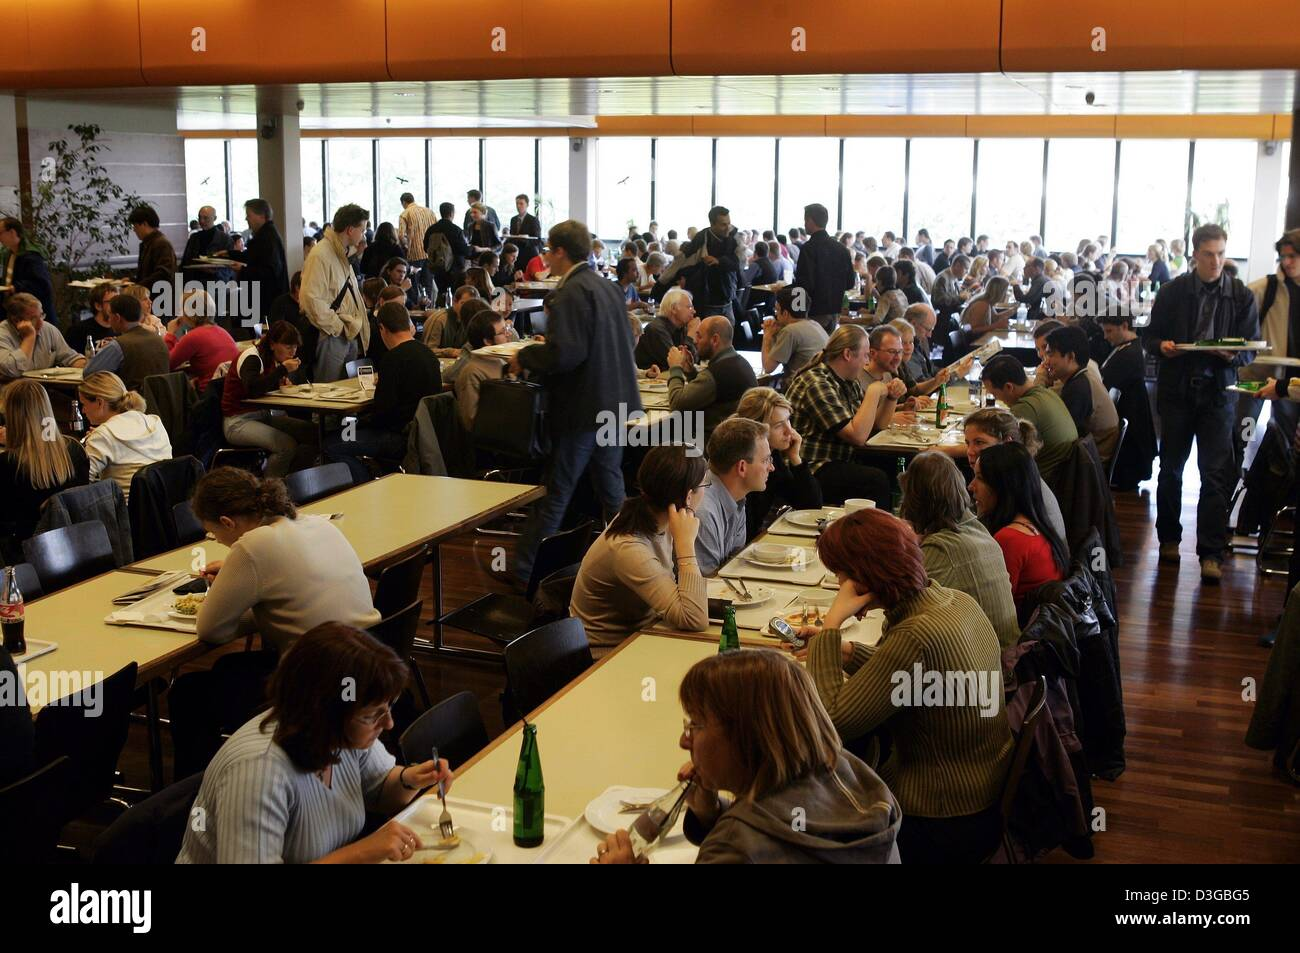 Cafeteria Stock Photos & Cafeteria Stock Images - Alamy